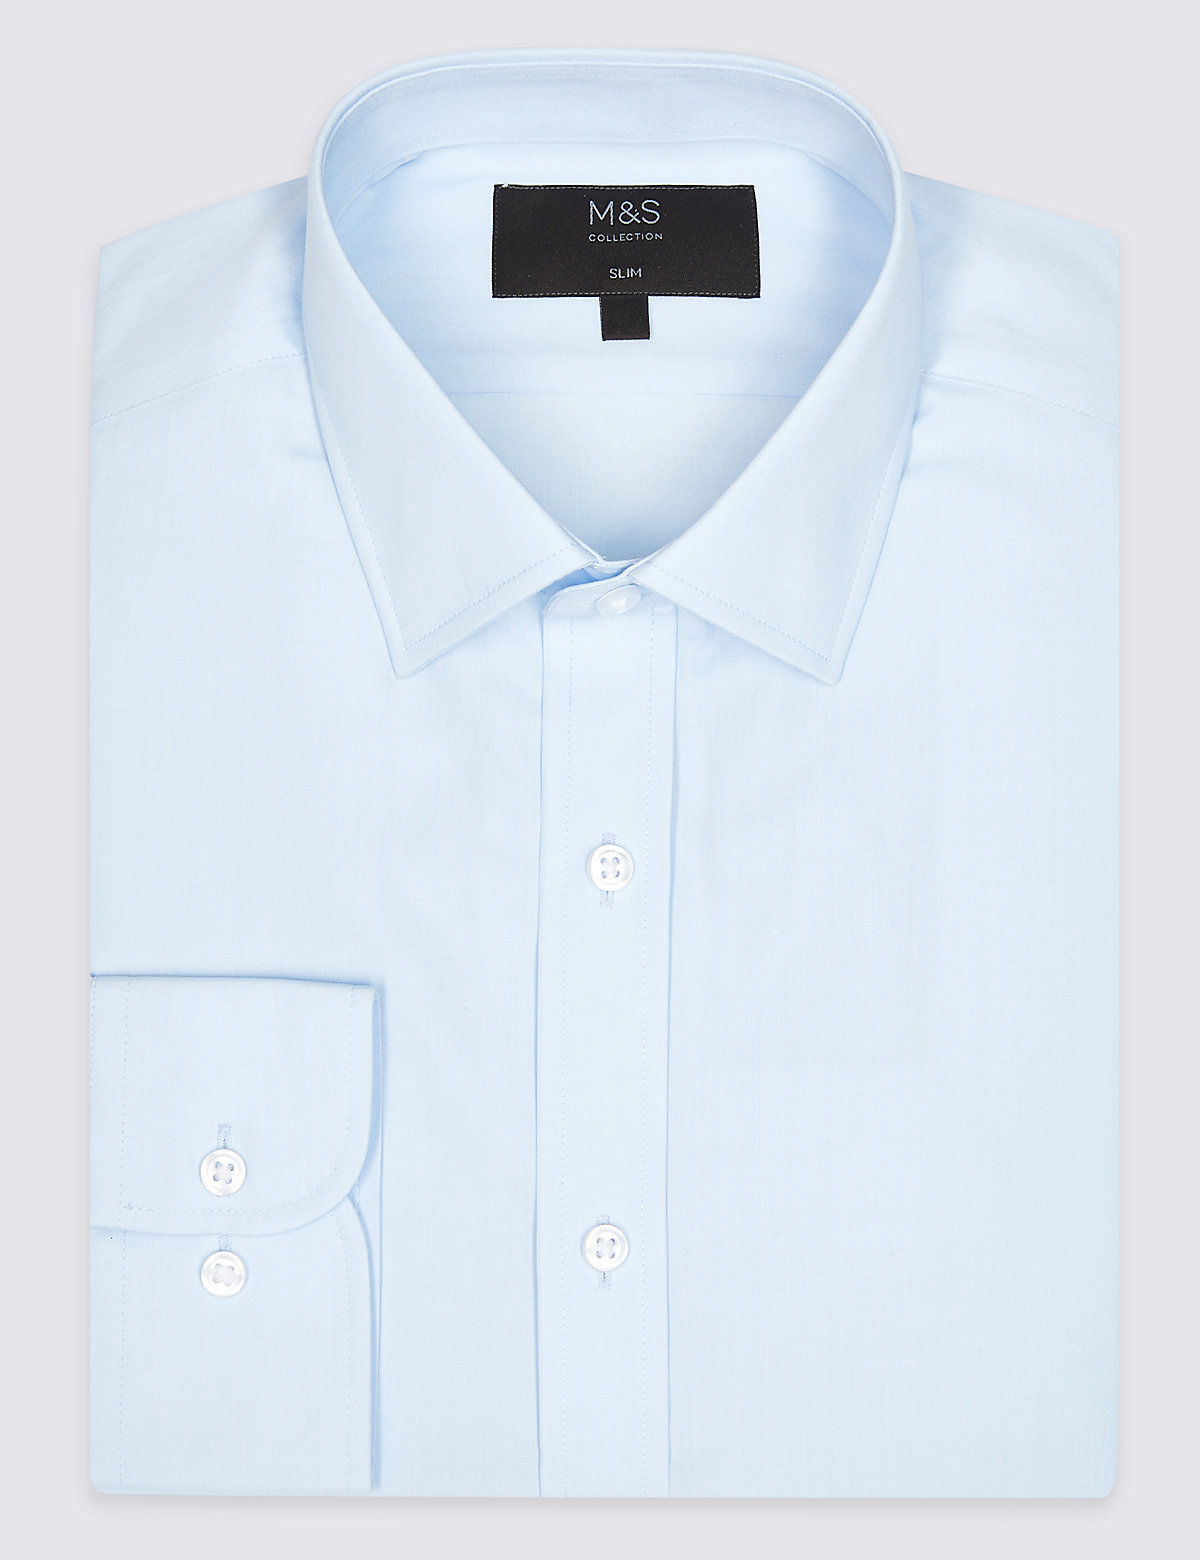 Marks & Spencer Sky Blue Cotton Blend Slim Fit Shirt